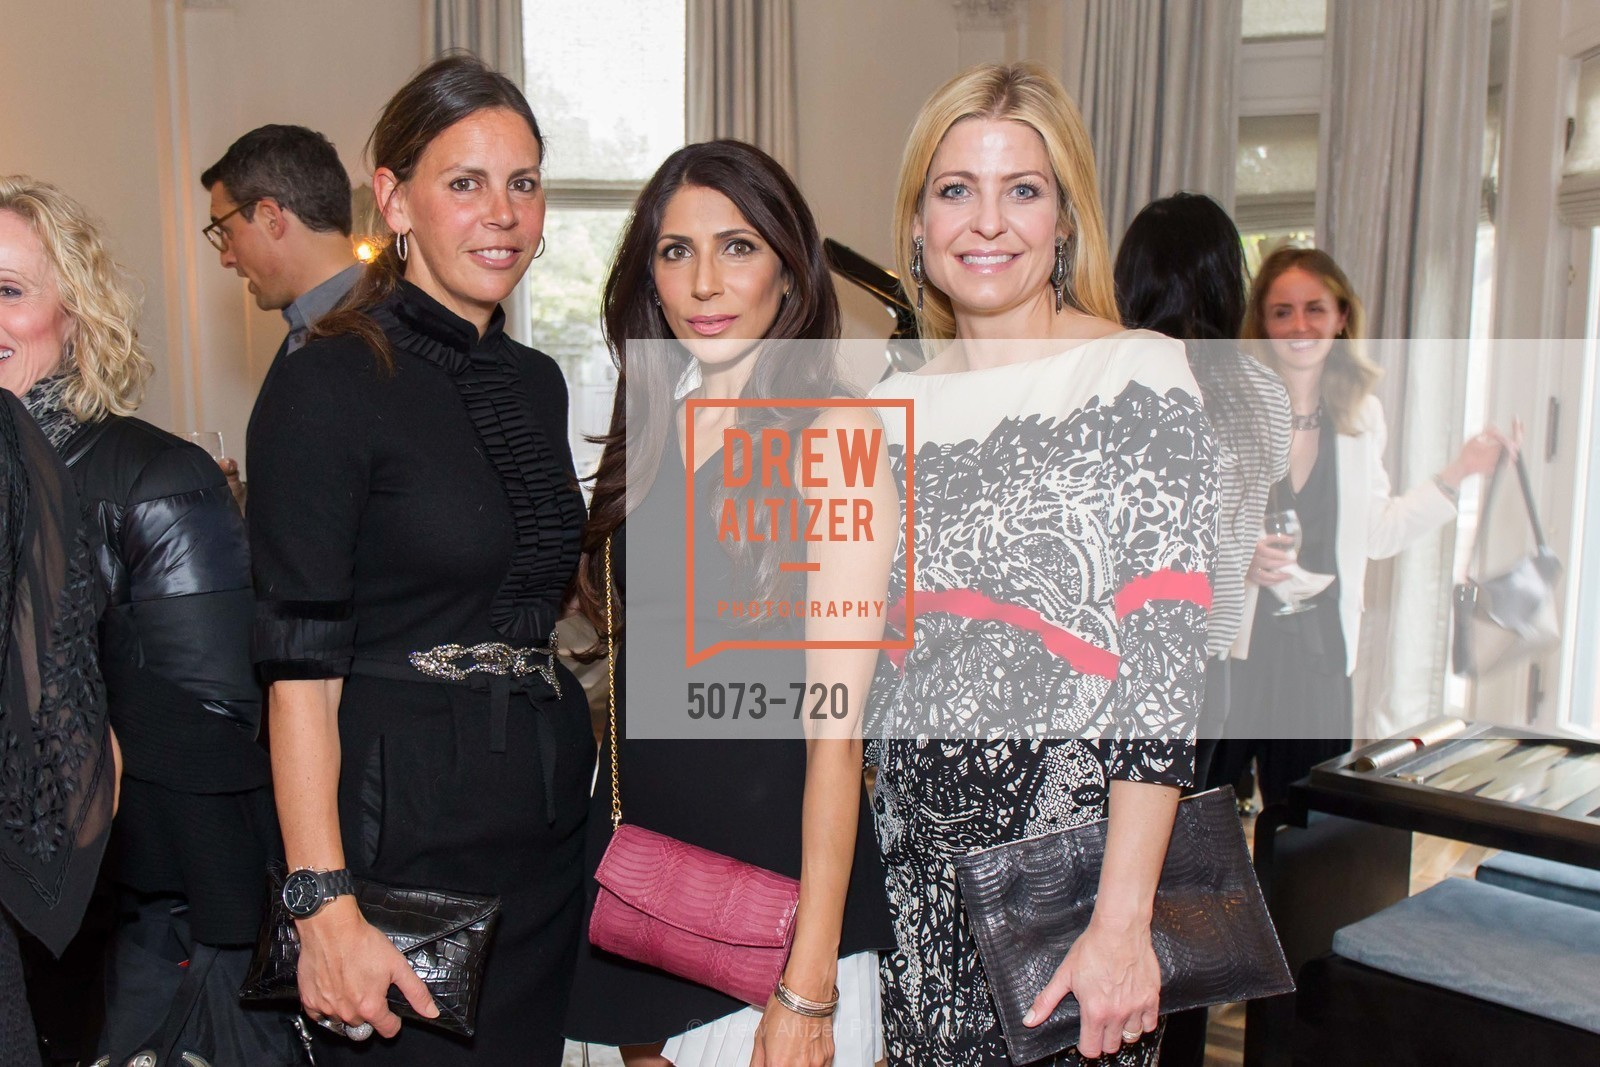 Anne Waterman, Sobia Shaikh, Jenna Hunt, C MAGAZINE Editors Cocktail Party, US, May 12th, 2015,Drew Altizer, Drew Altizer Photography, full-service agency, private events, San Francisco photographer, photographer california